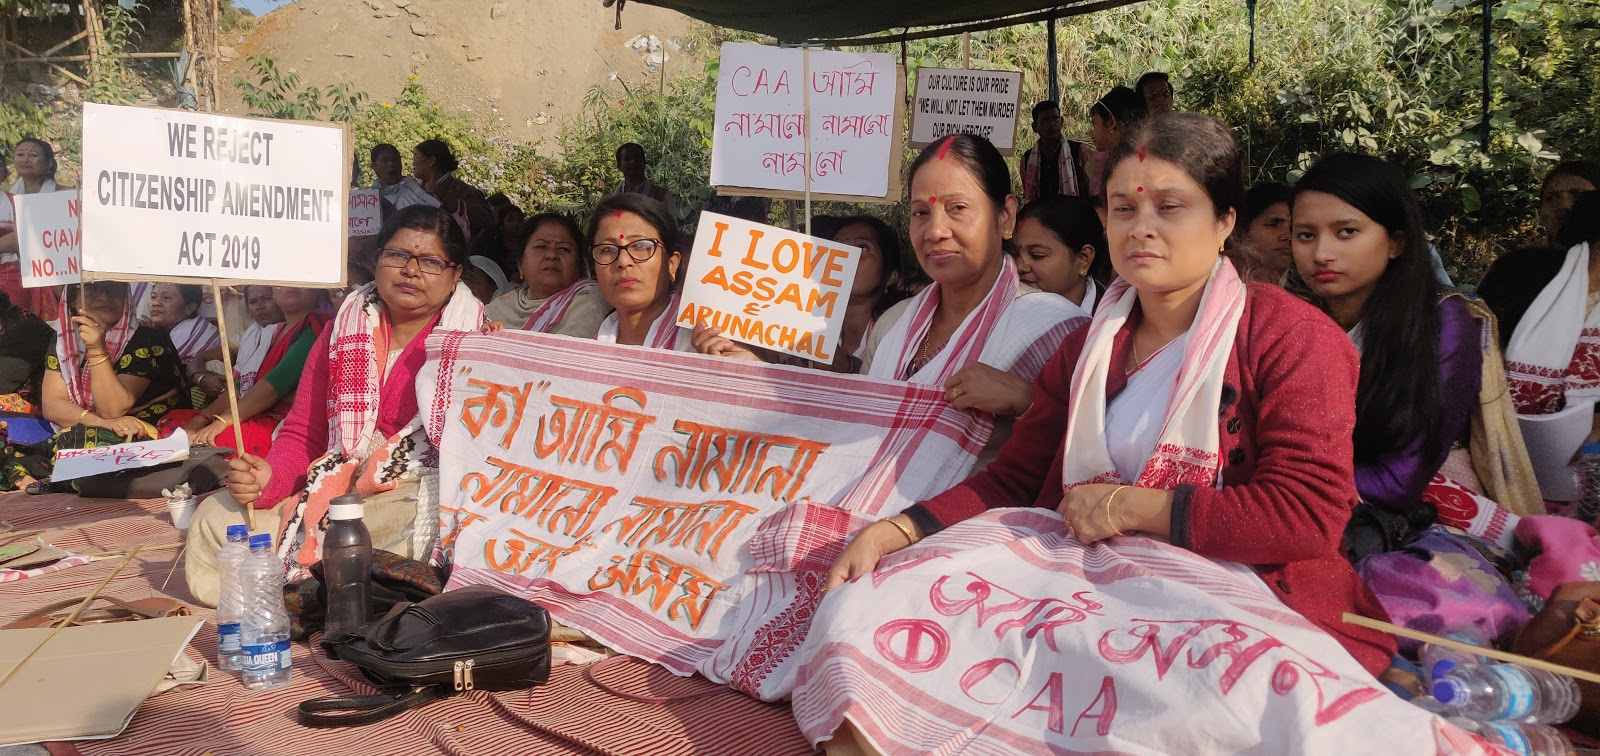 North East protests against CAA with dharnas and songs